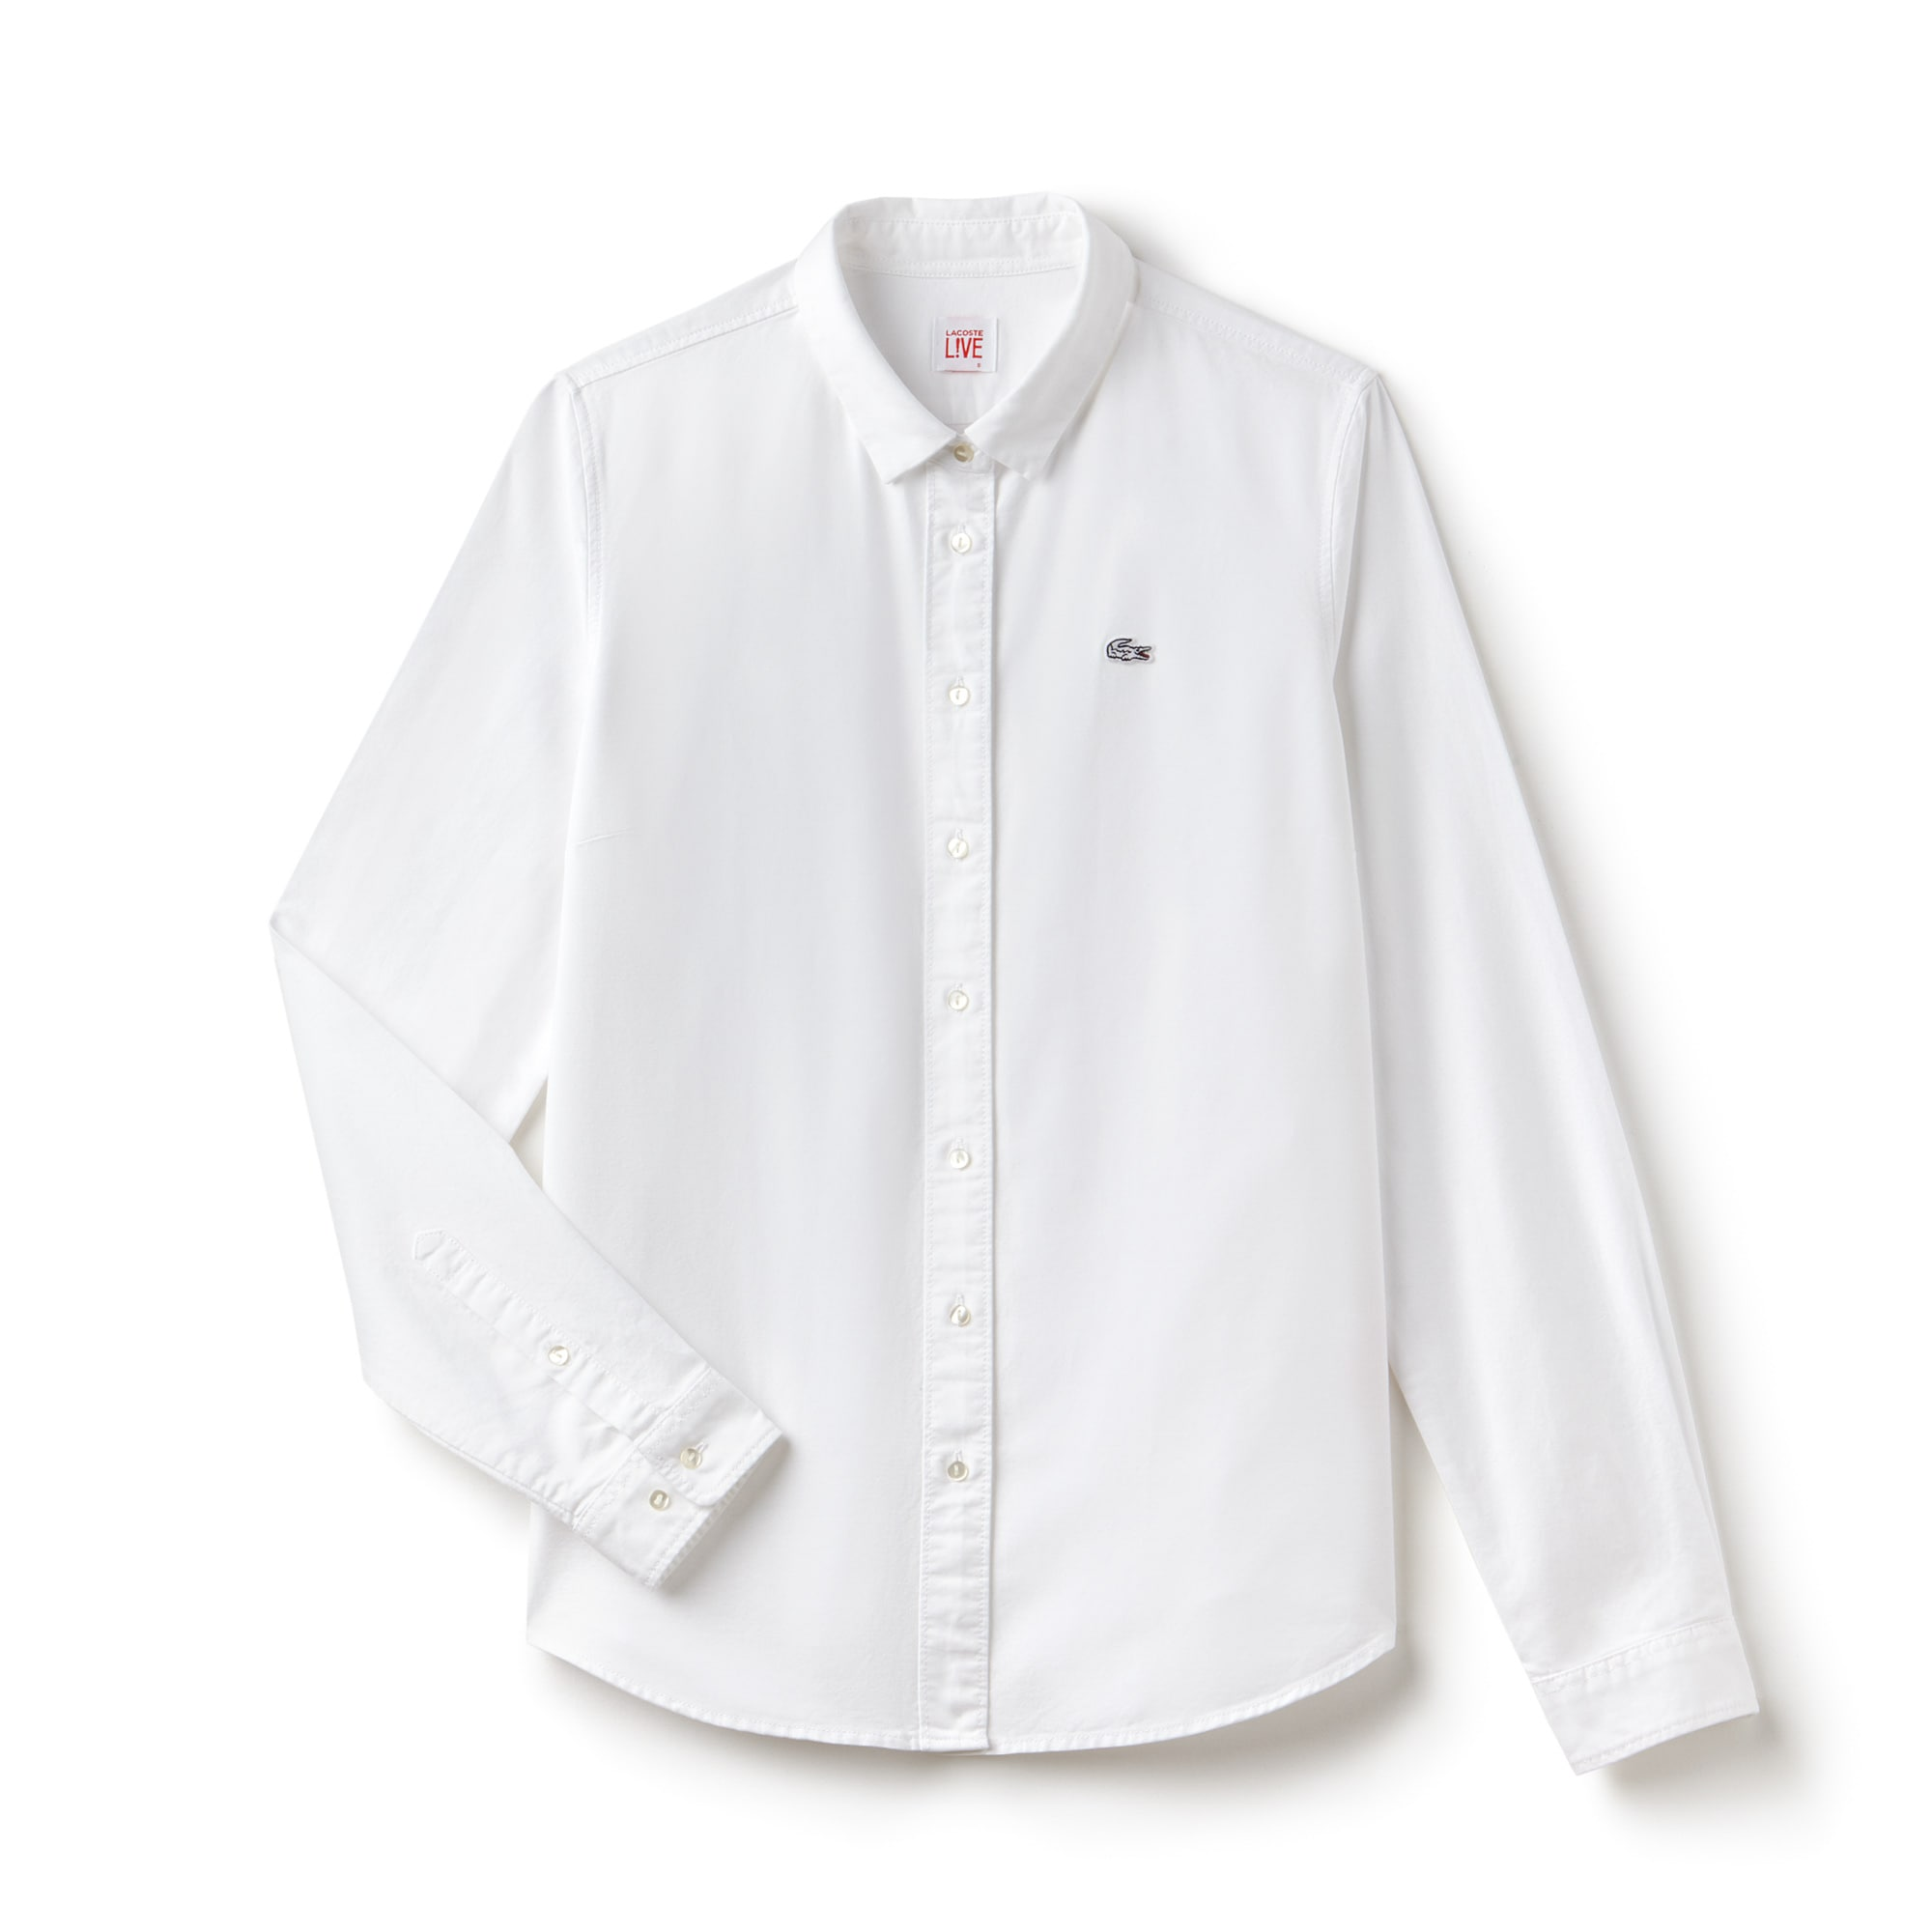 Lacoste LIVE-shirt dames slim fit Oxfordkatoen